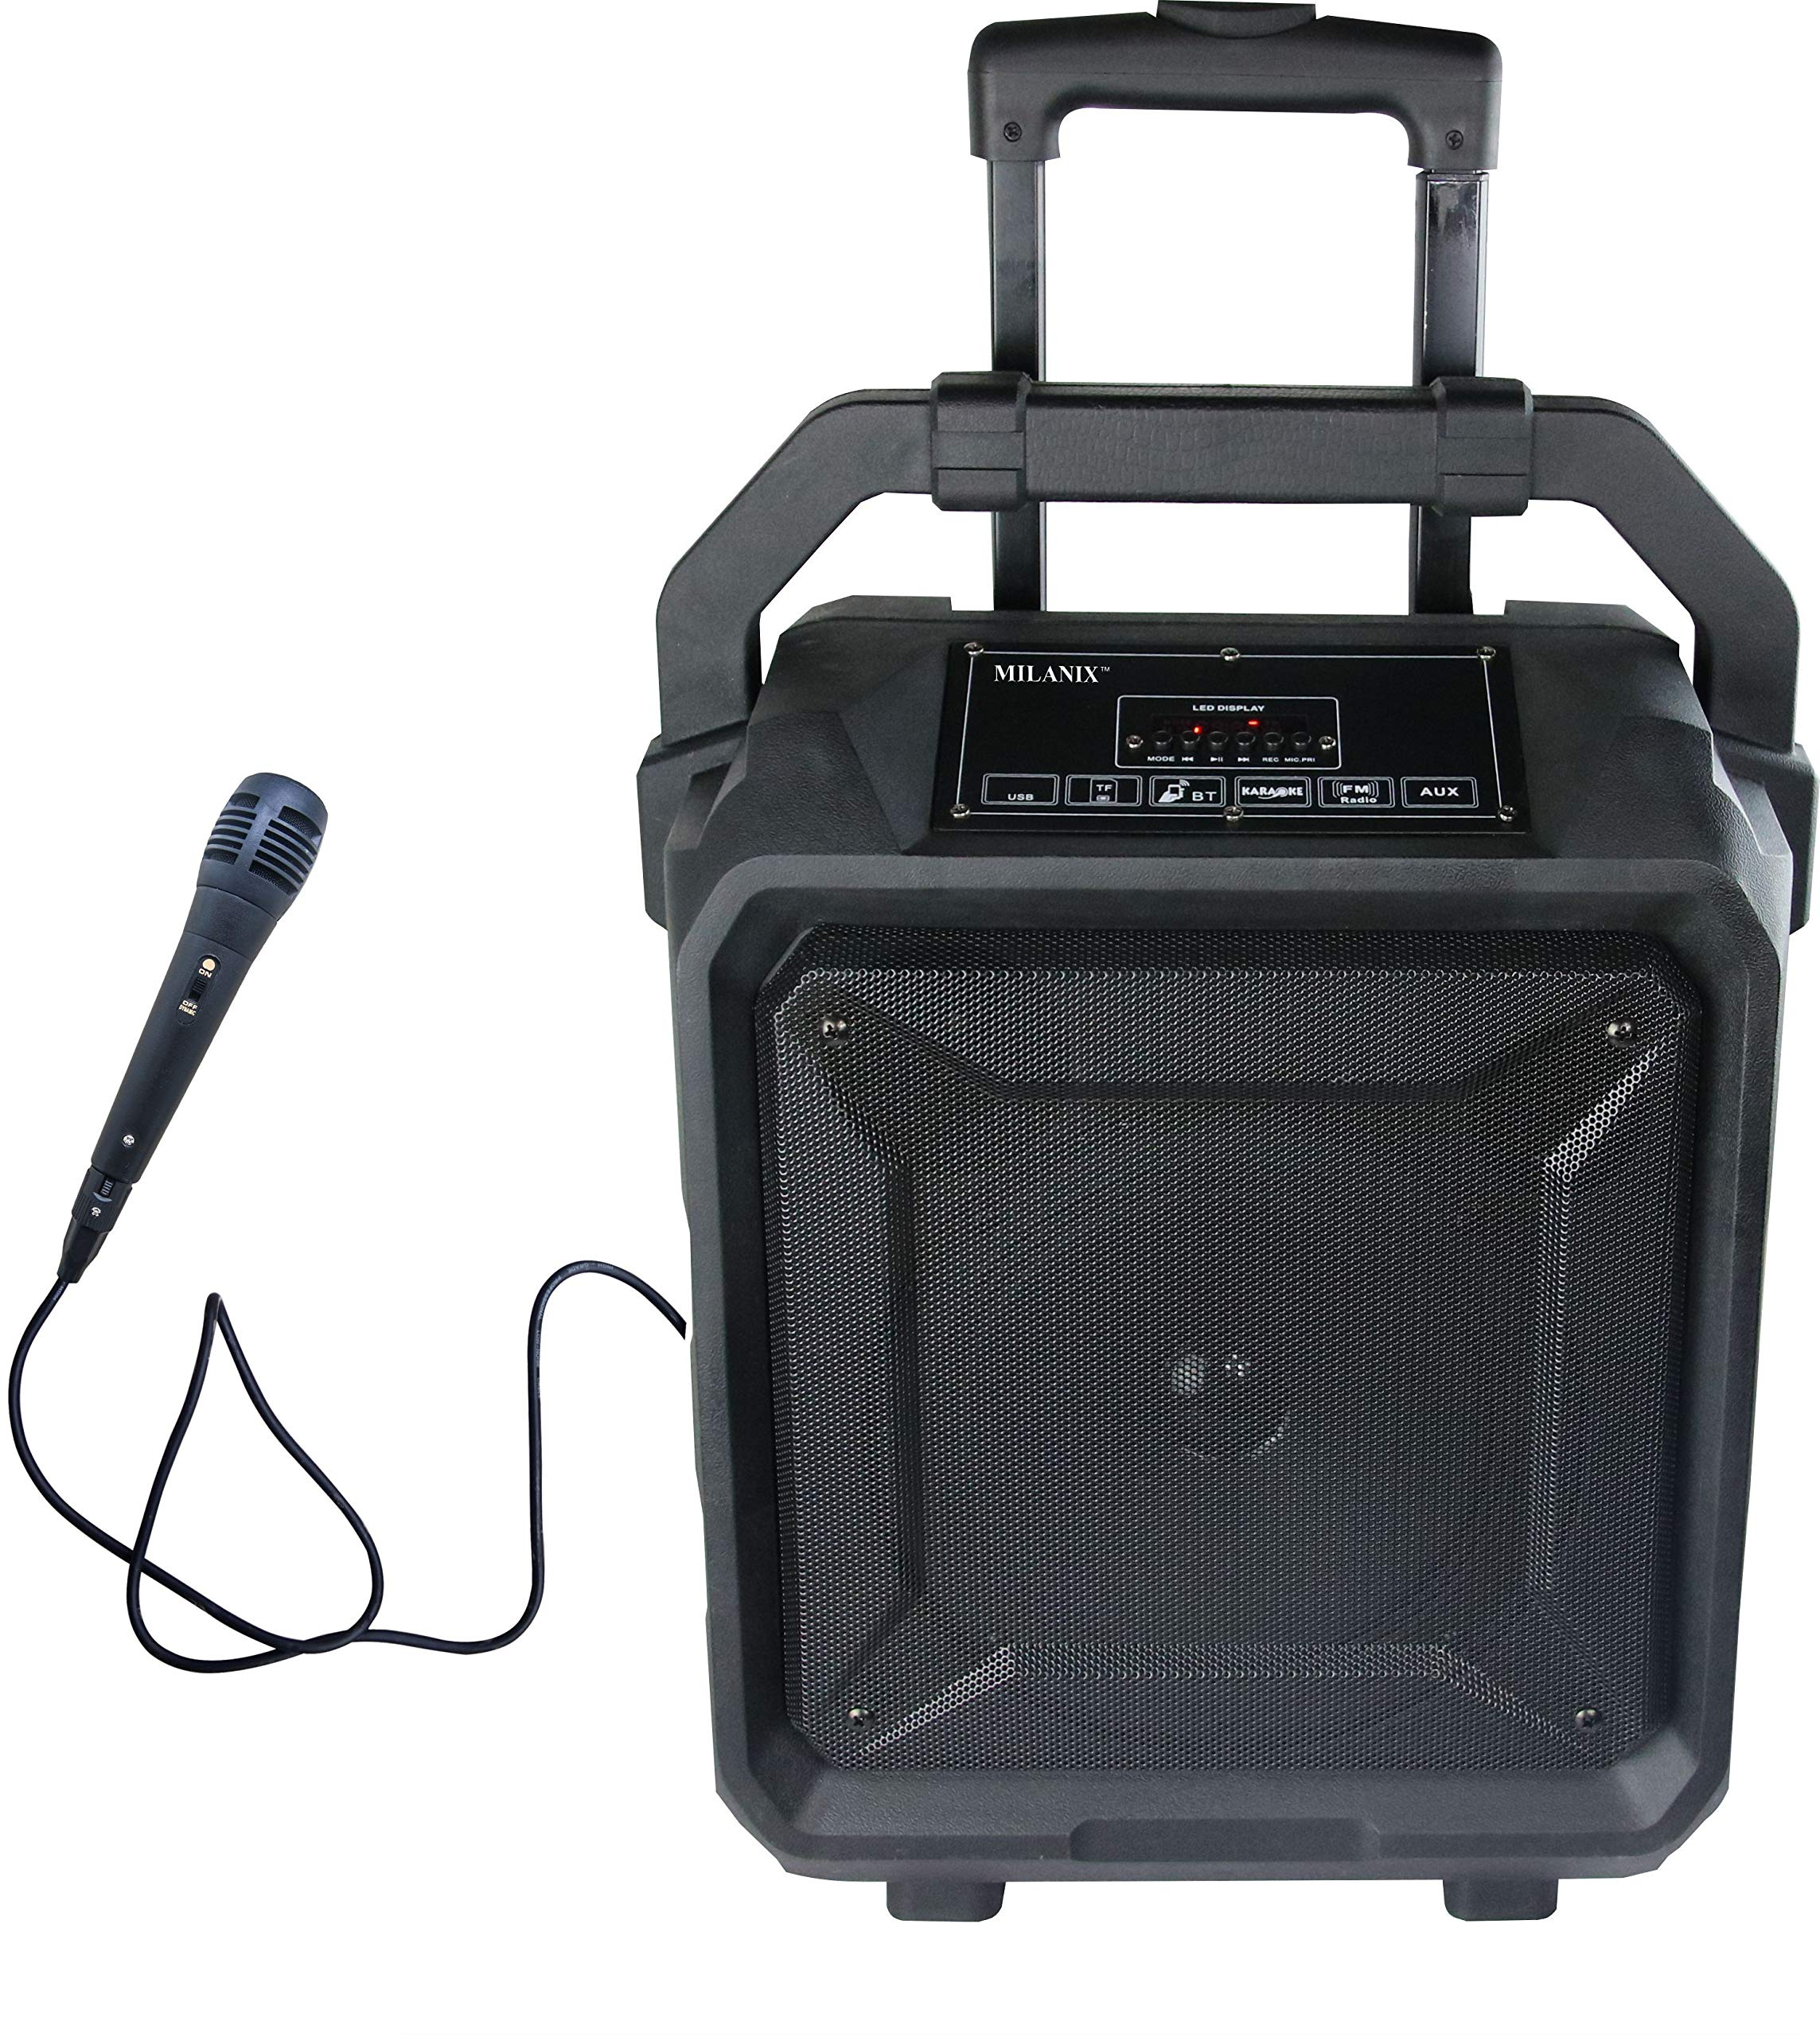 Milanix Tailgate Portable Bluetooth PA Karaoke Speaker with Microphone, USB Charge Port, Guitar Input, SD, MP3, FM, and Recording Ability